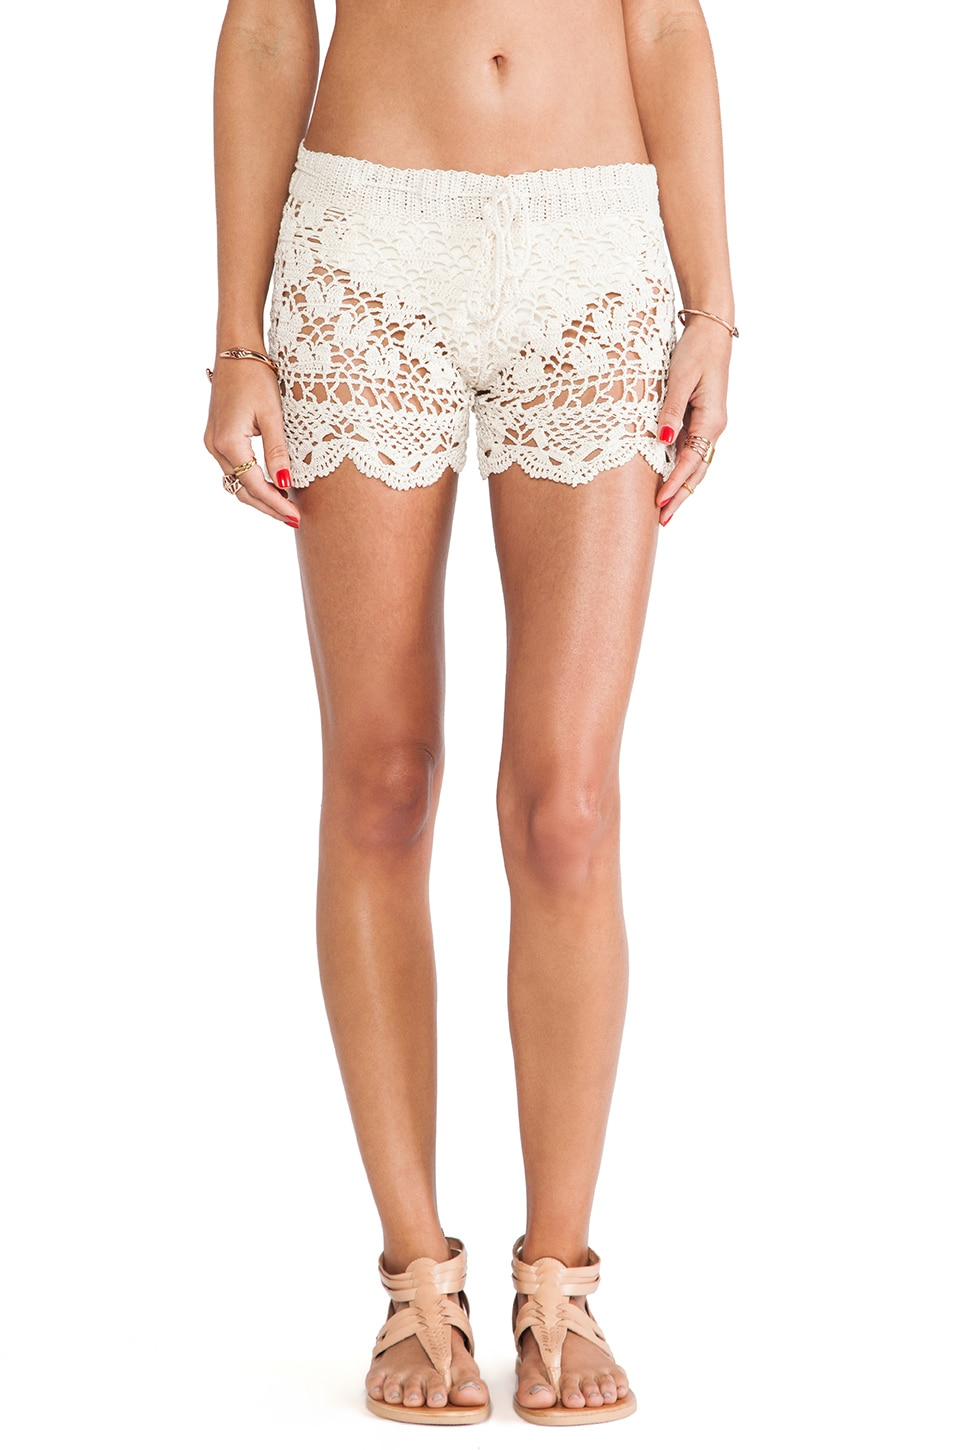 Anna Kosturova Antoinette Shorts in Cream